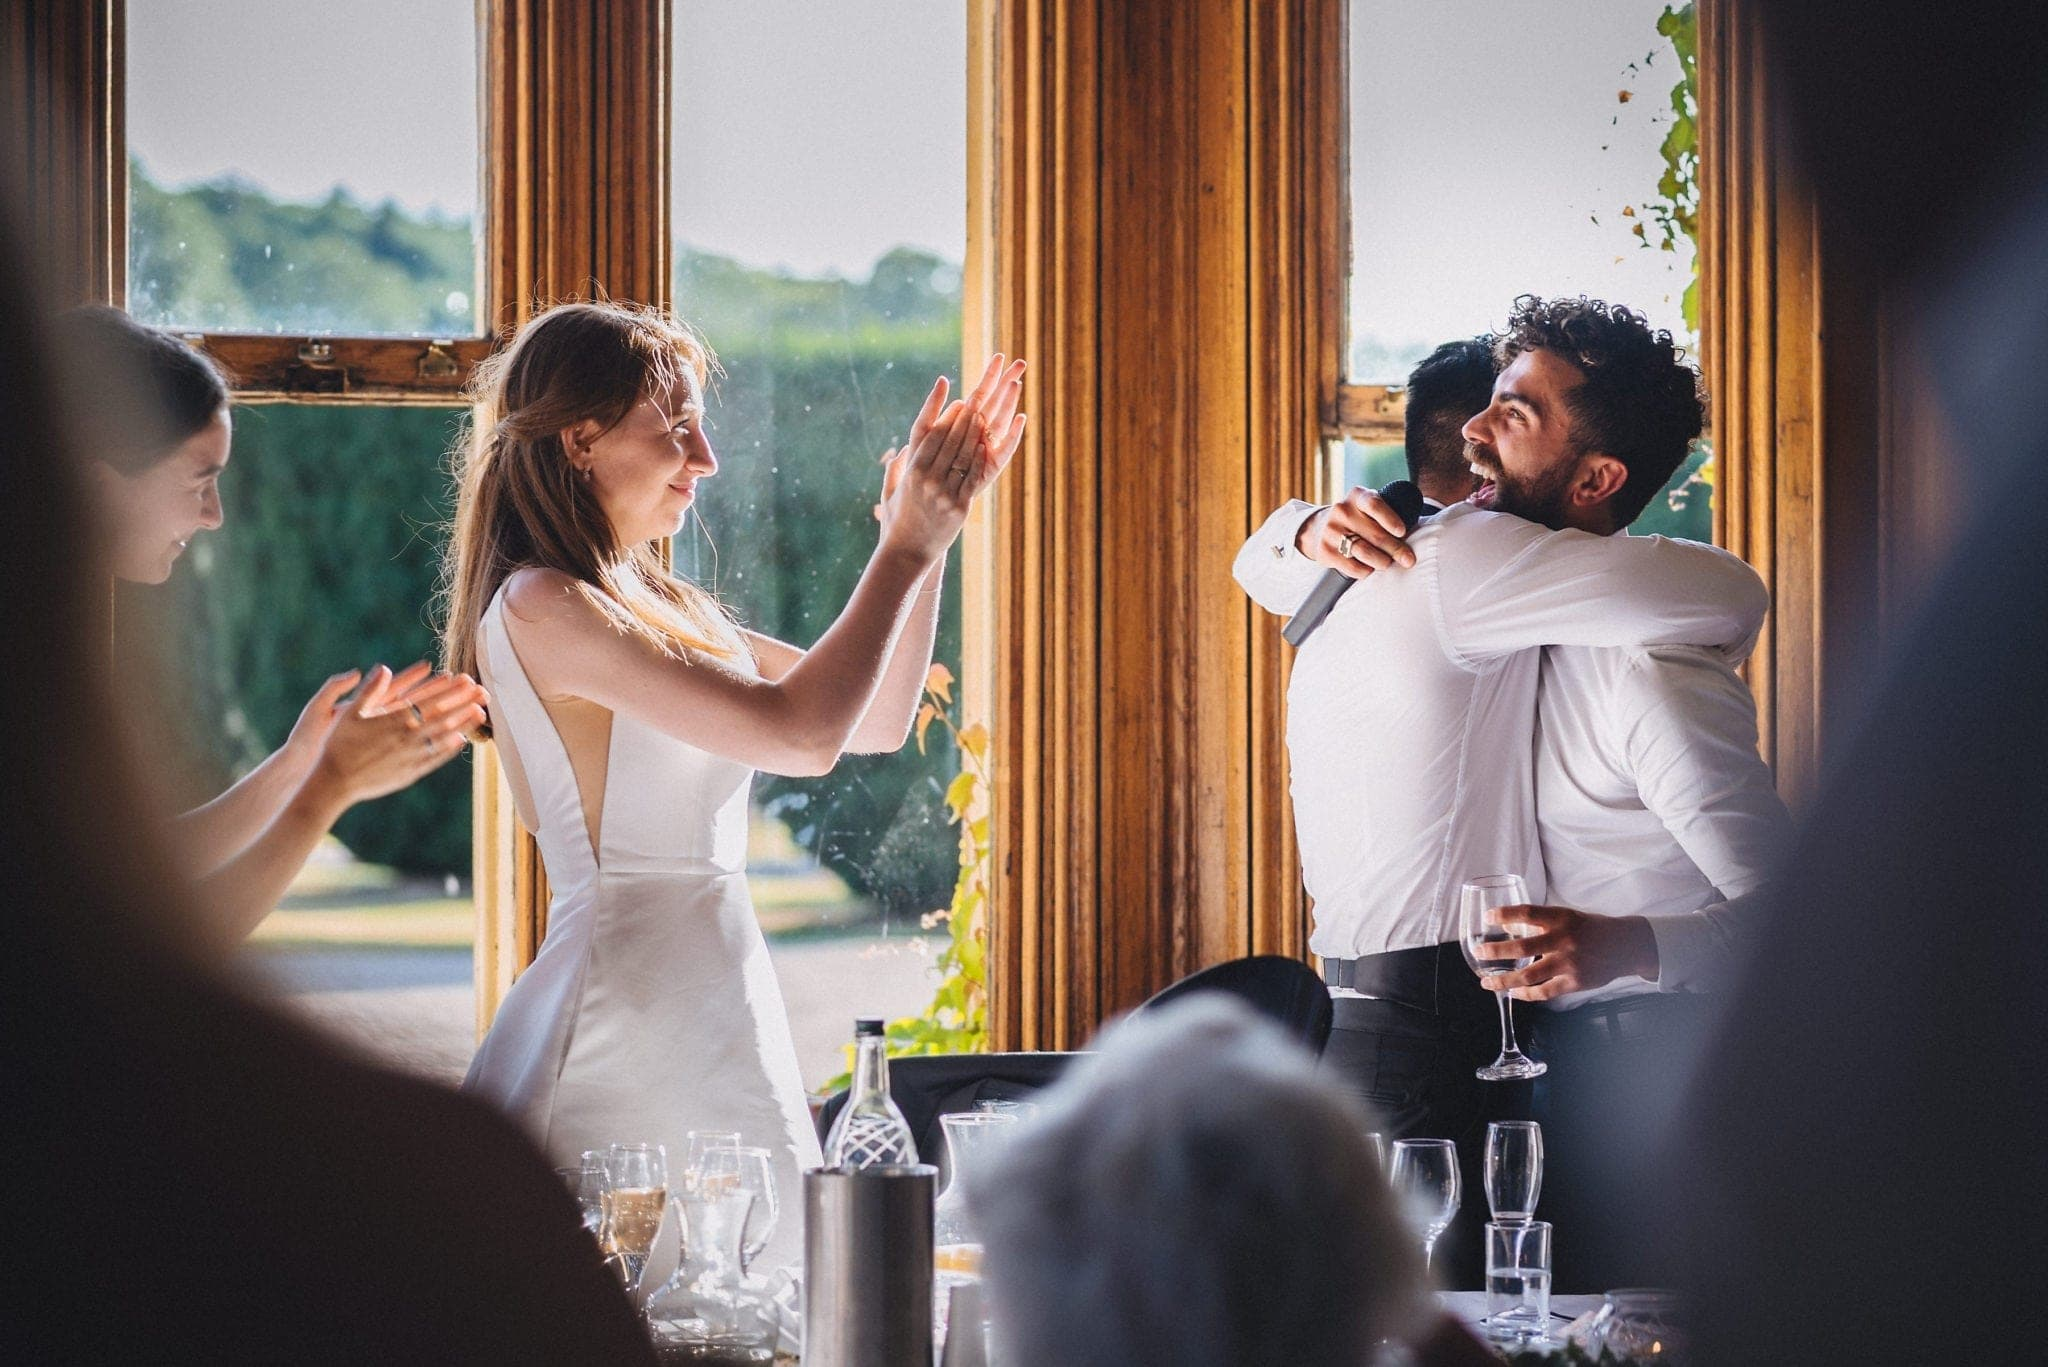 Bride clapping while groom hugs his laughing best man after his speech